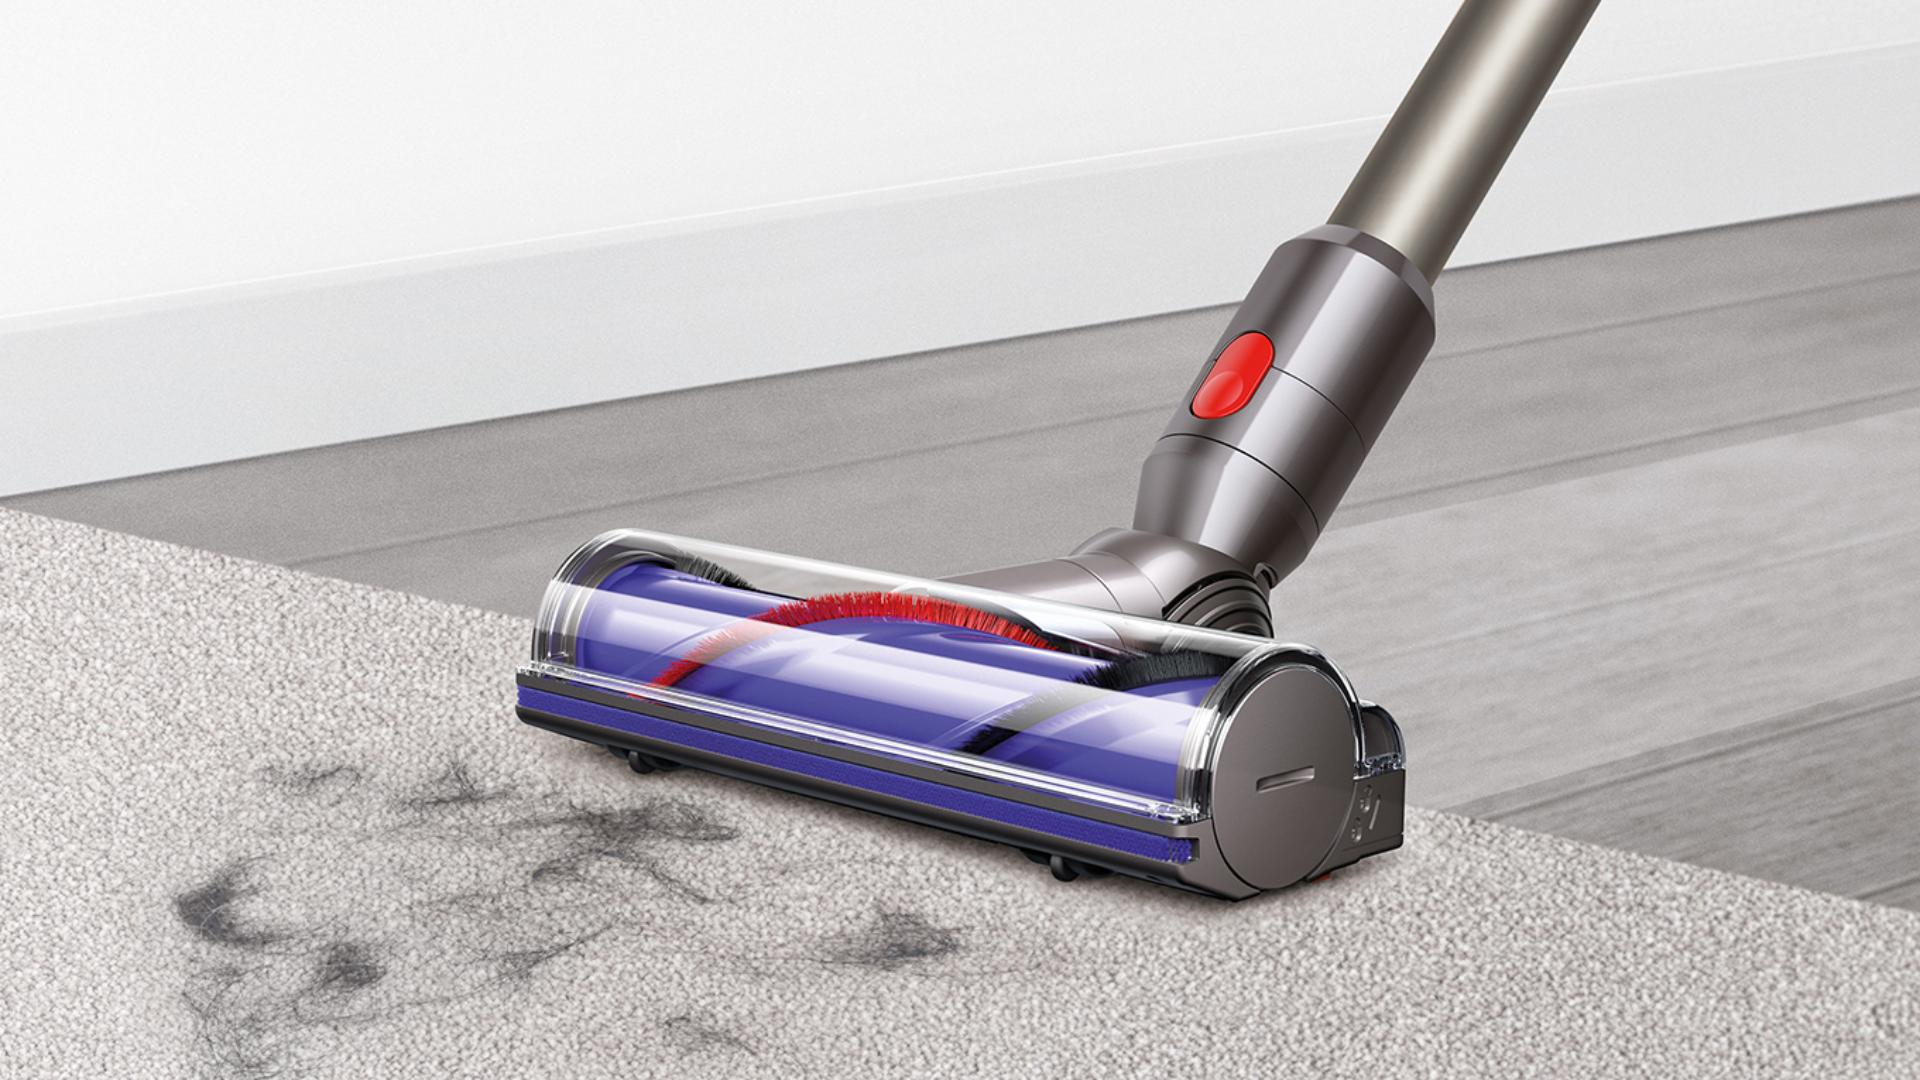 Close-up of the Dyson V8 cleaner head